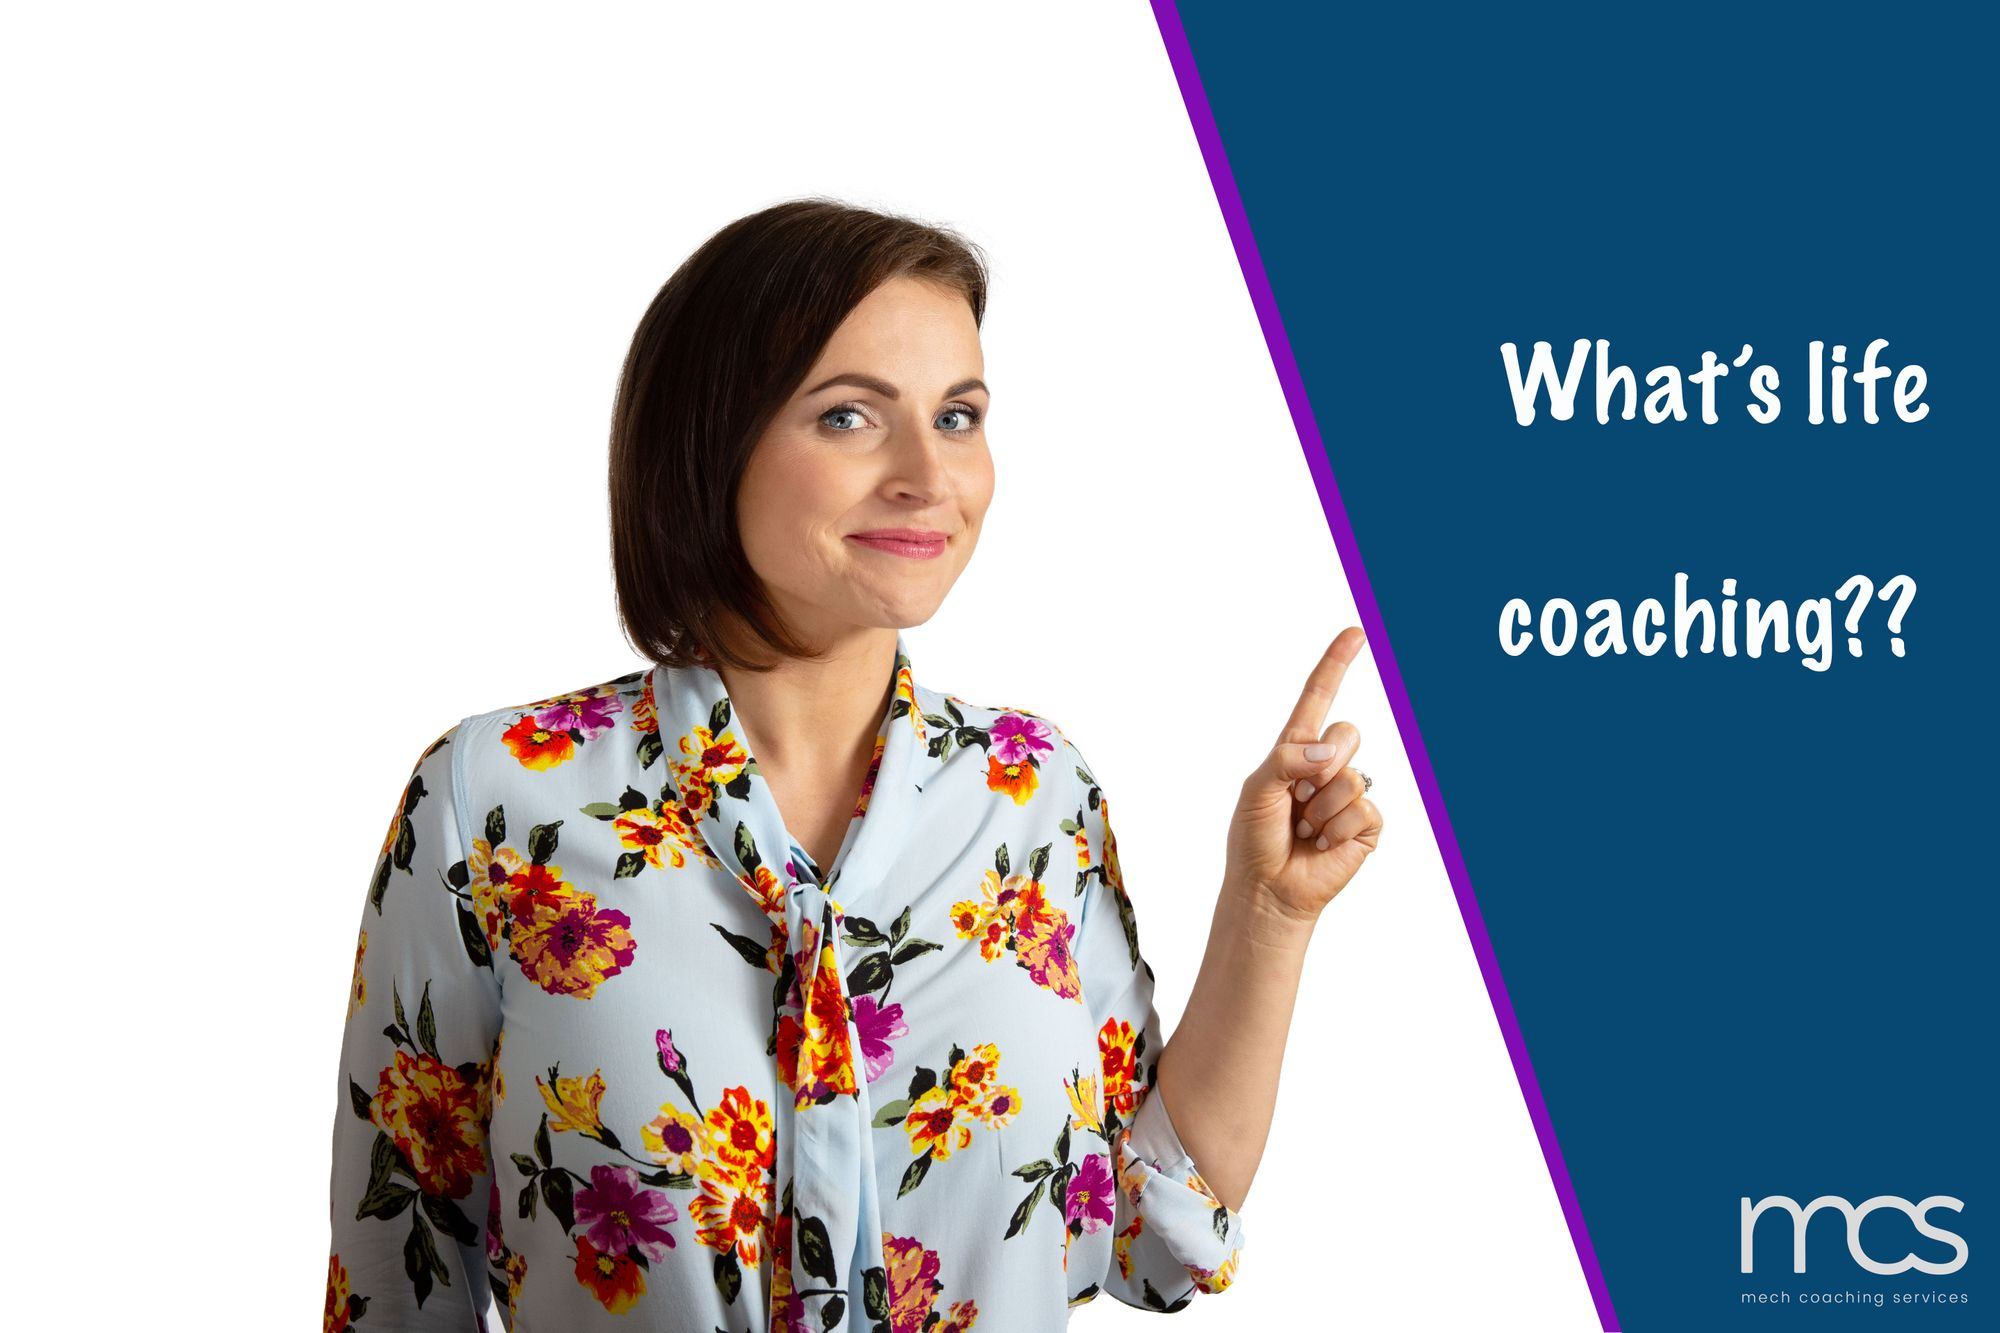 What's life coaching?